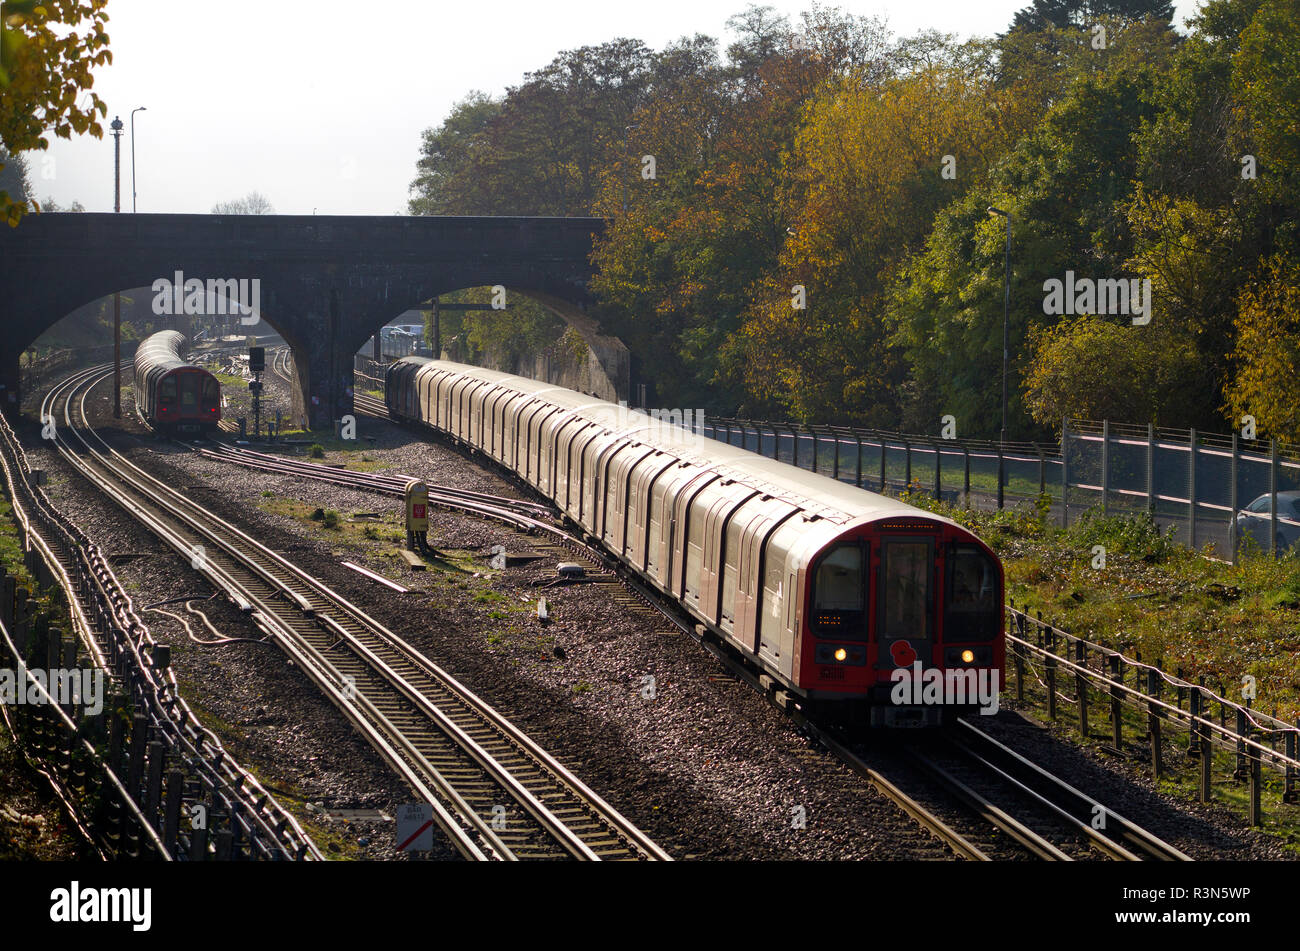 A Central Line train formed of London Underground 1992 stock heads north at Newbury Park. 9th November 2018. Stock Photo